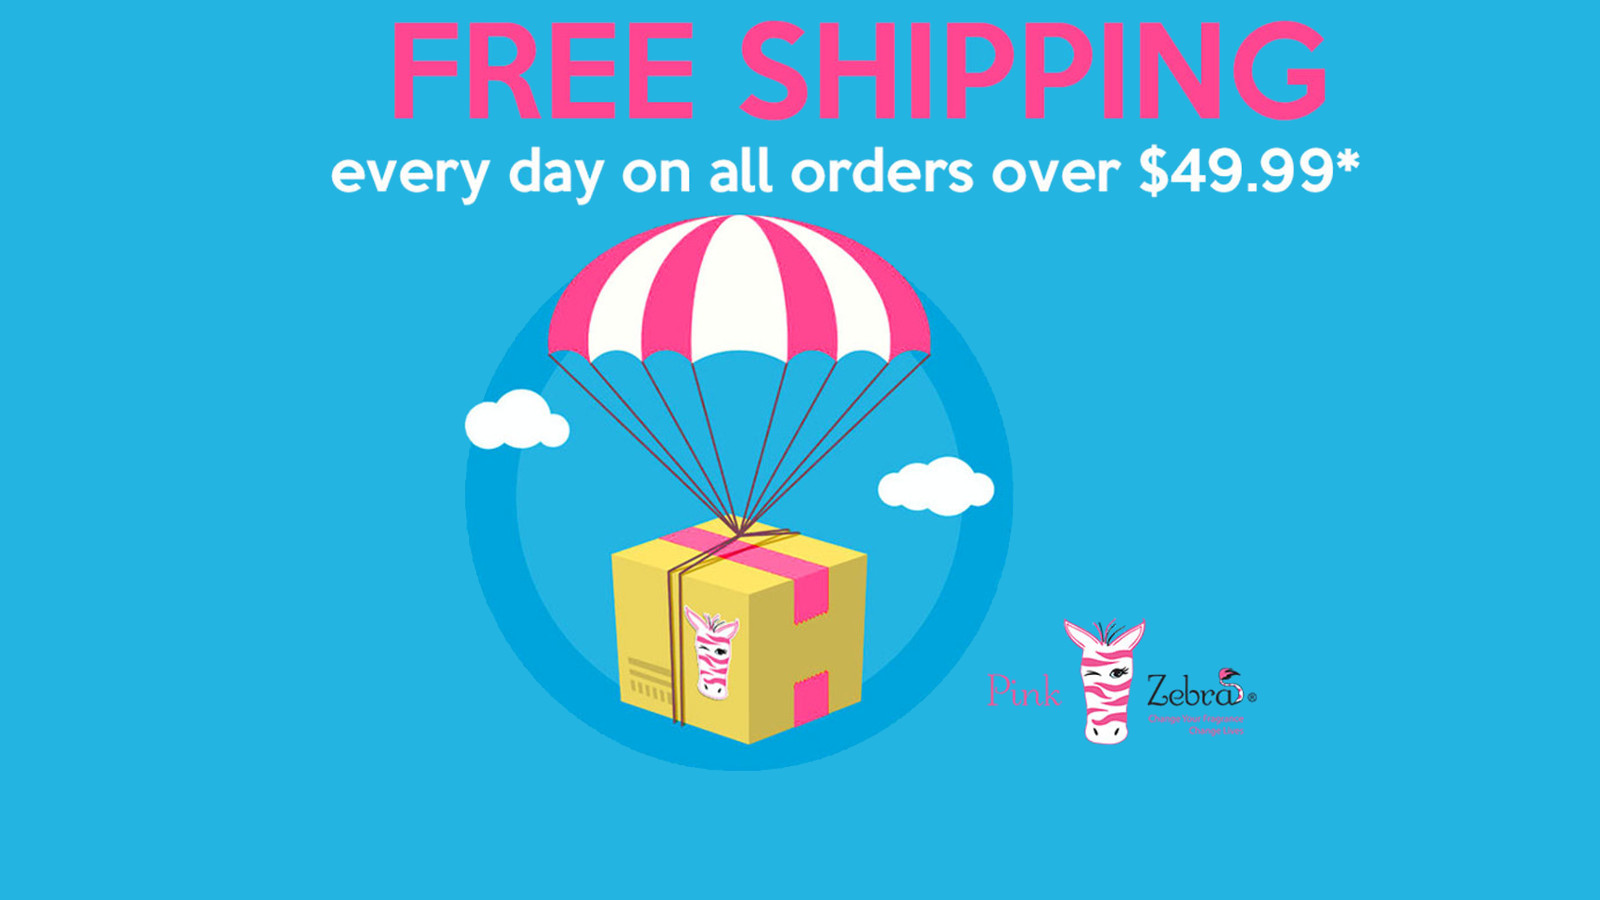 Now free shipping on all orders over $49.99